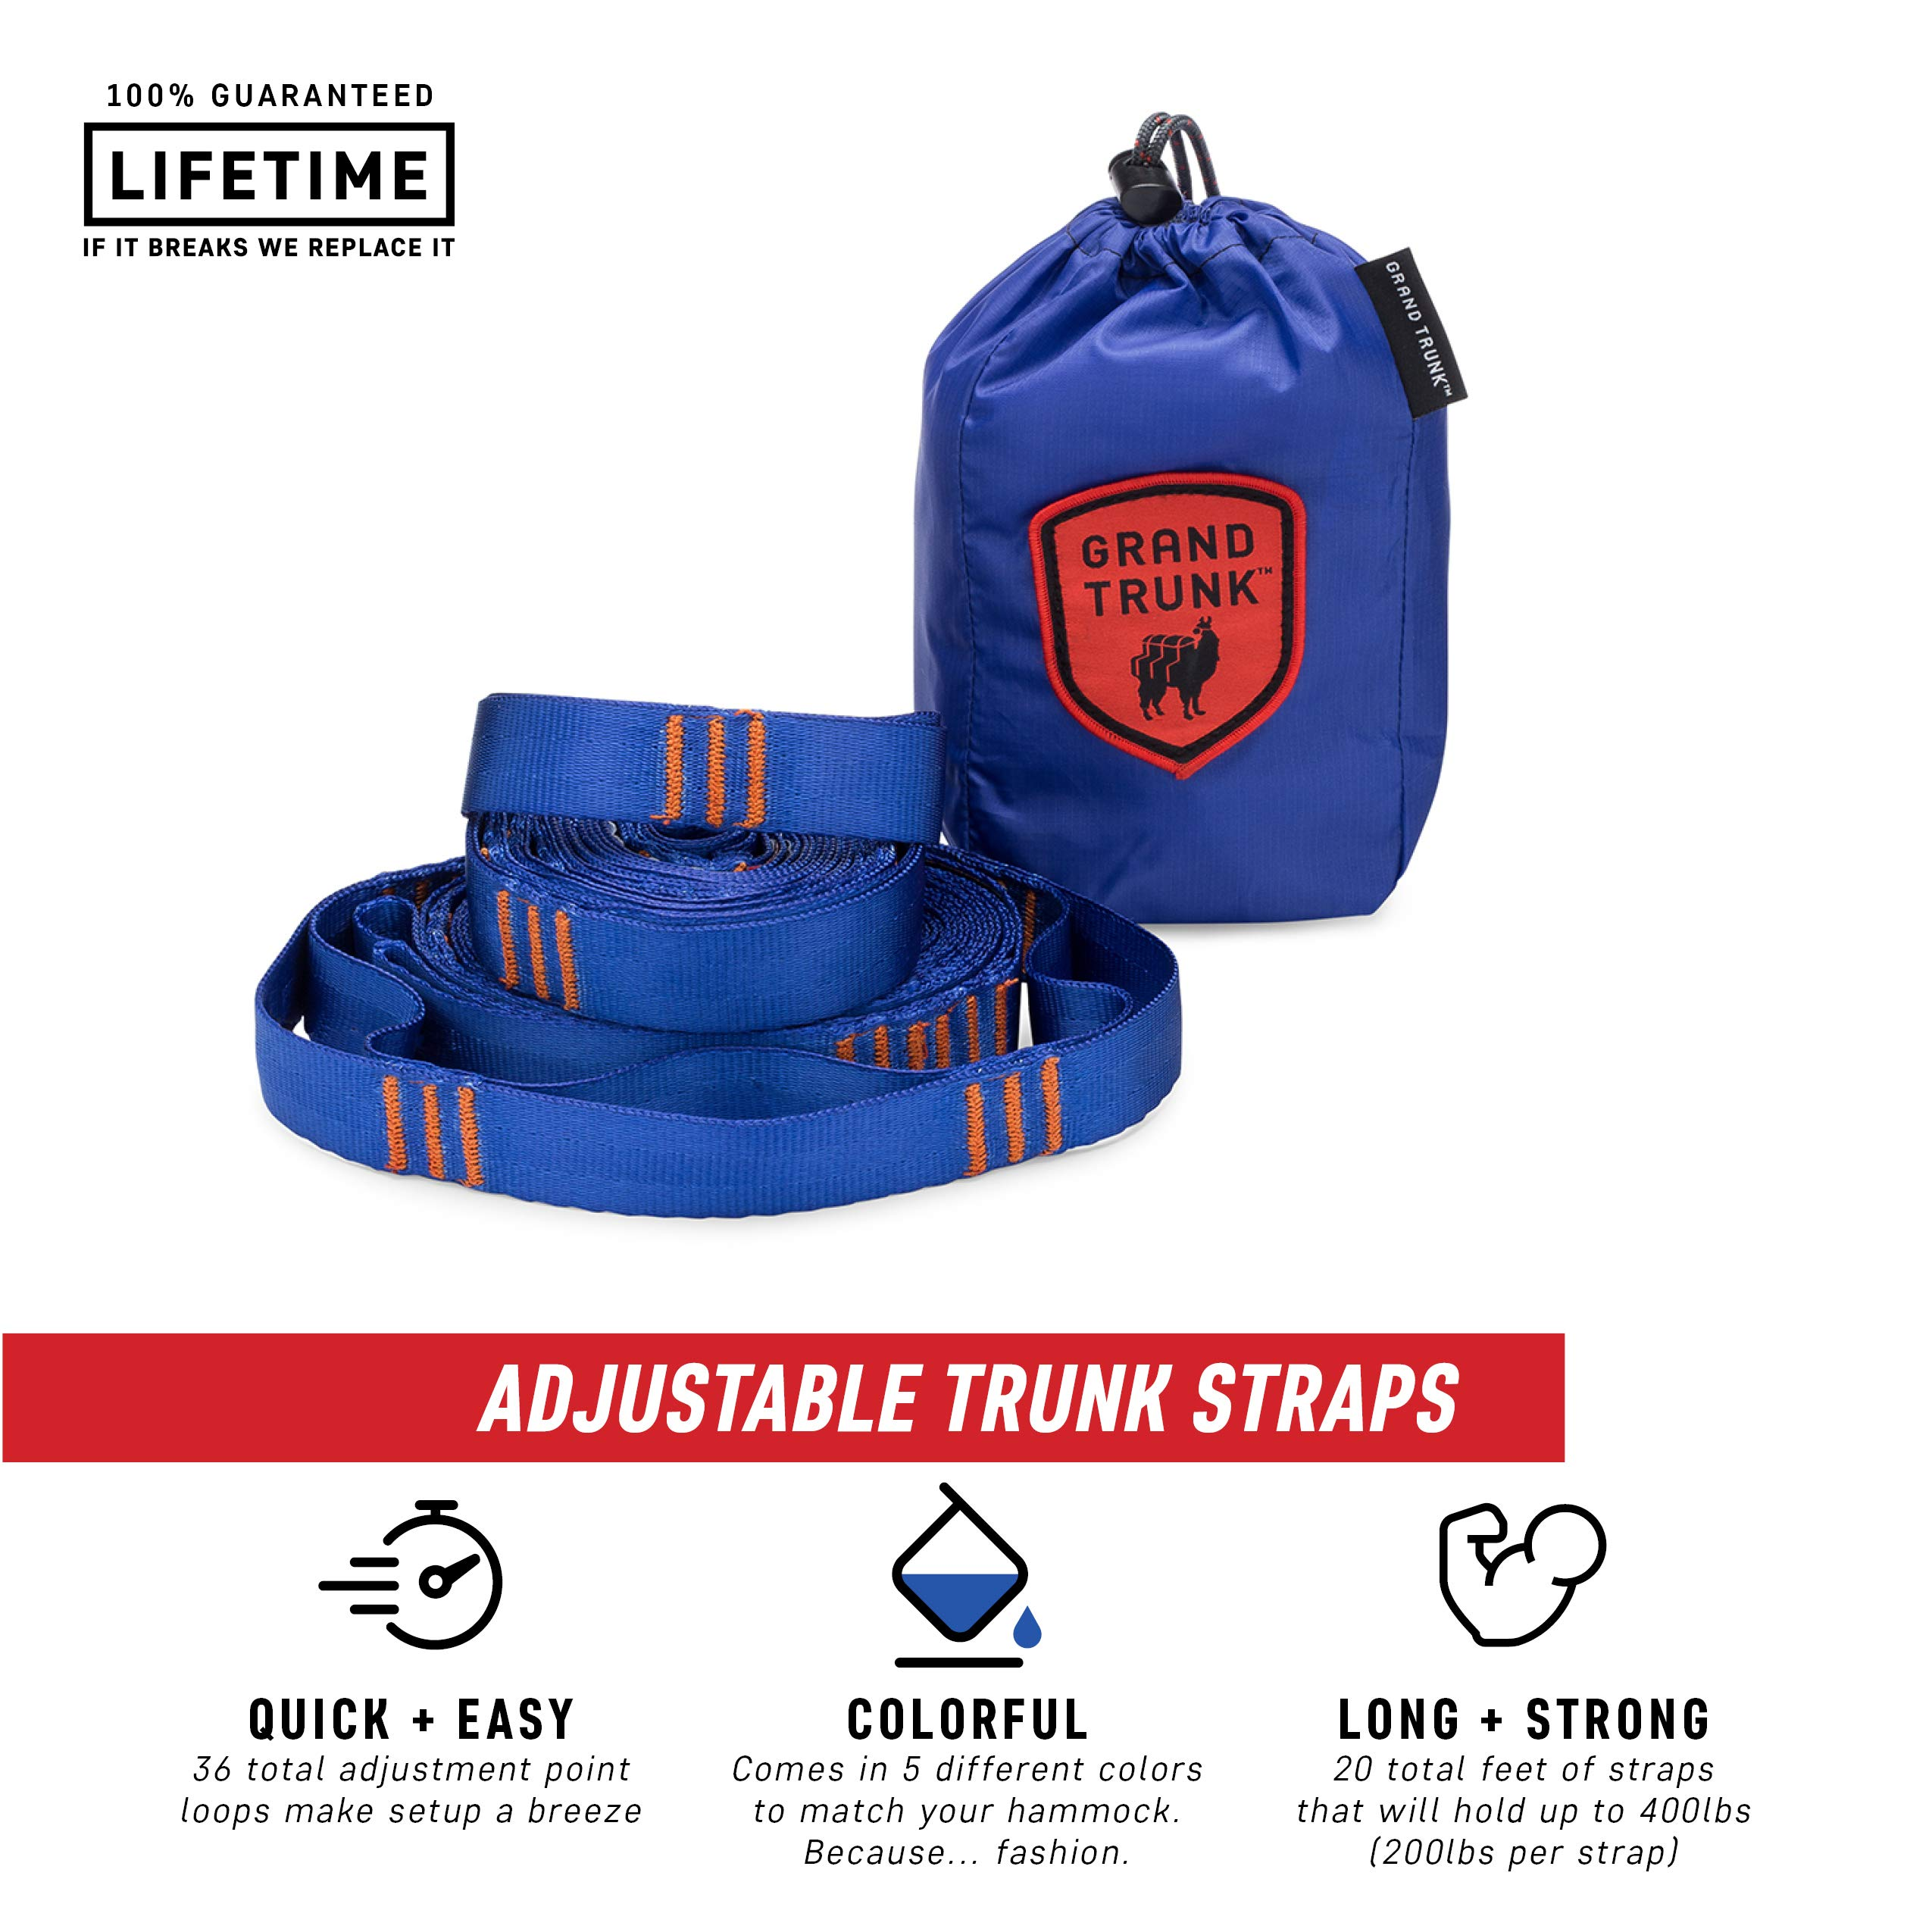 Grand Trunk Hammock Suspension System Trunk Straps, Blue, One Size by Grand Trunk